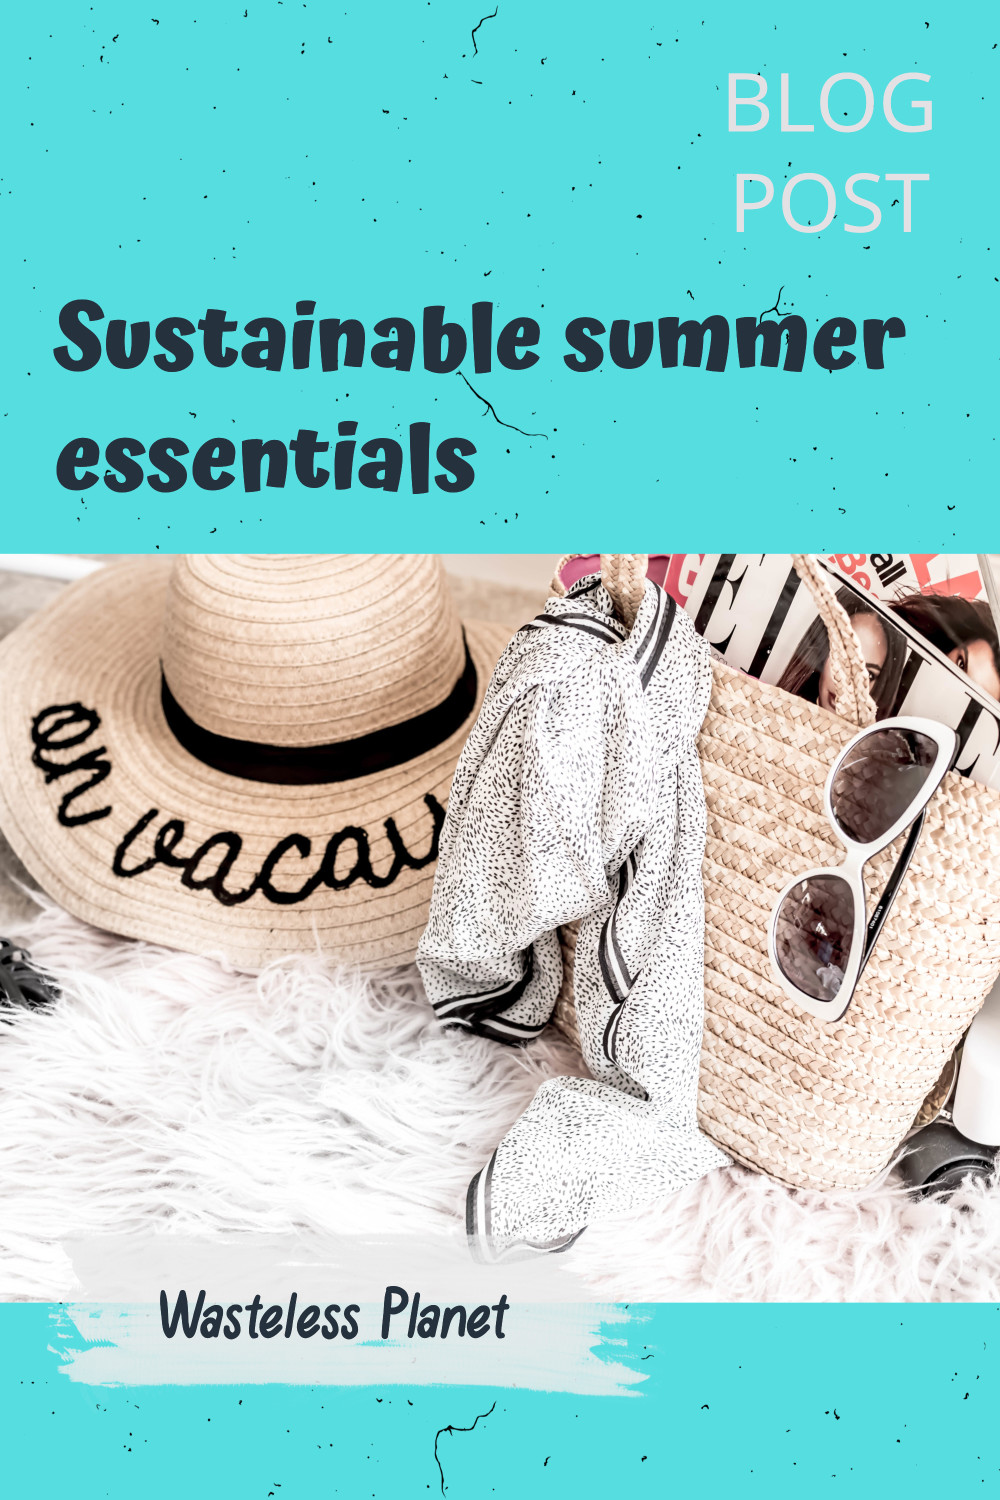 Sustainable summer essentials you need and love